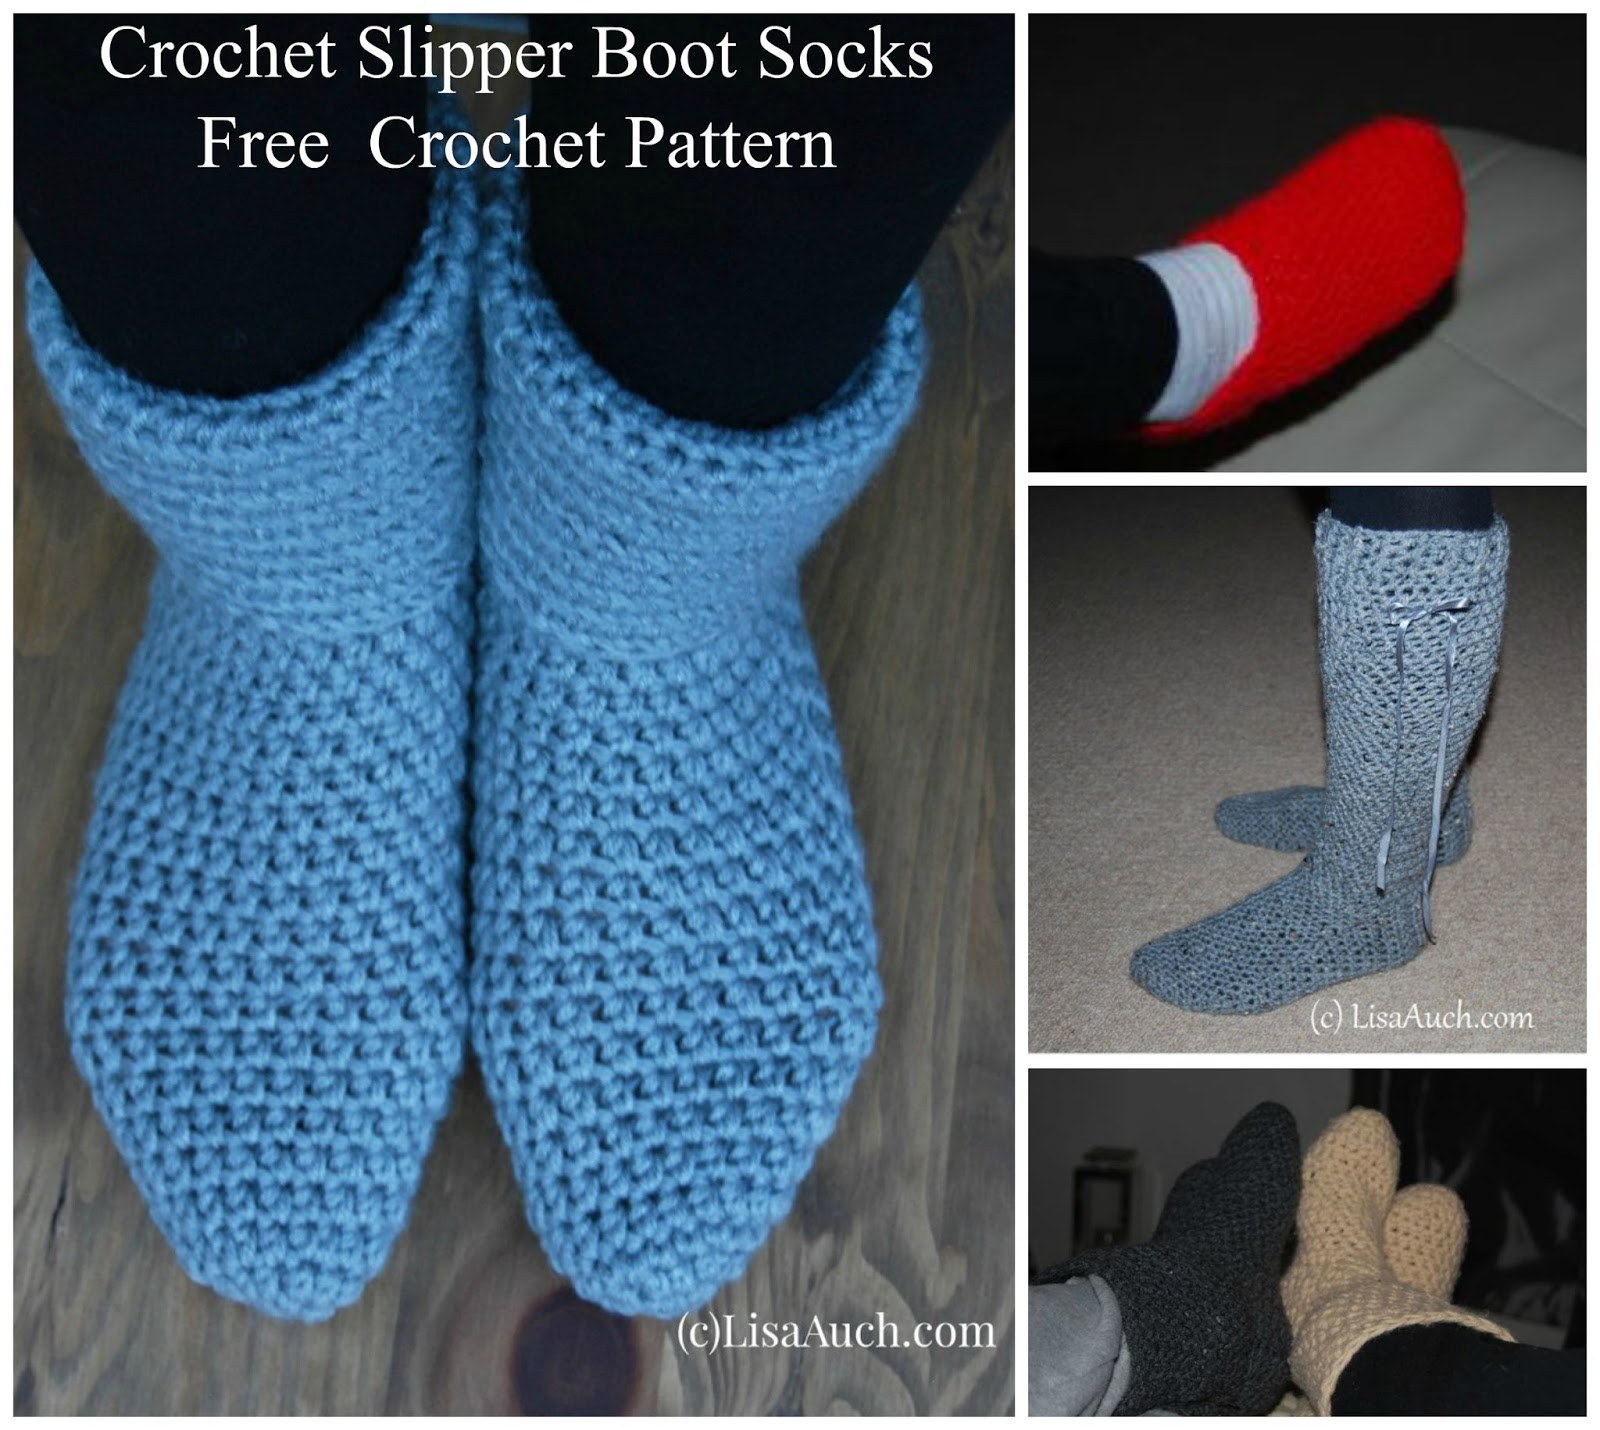 Crochet Slipper Boots A Free Crochet Pattern (How To Crochet Slipper ...